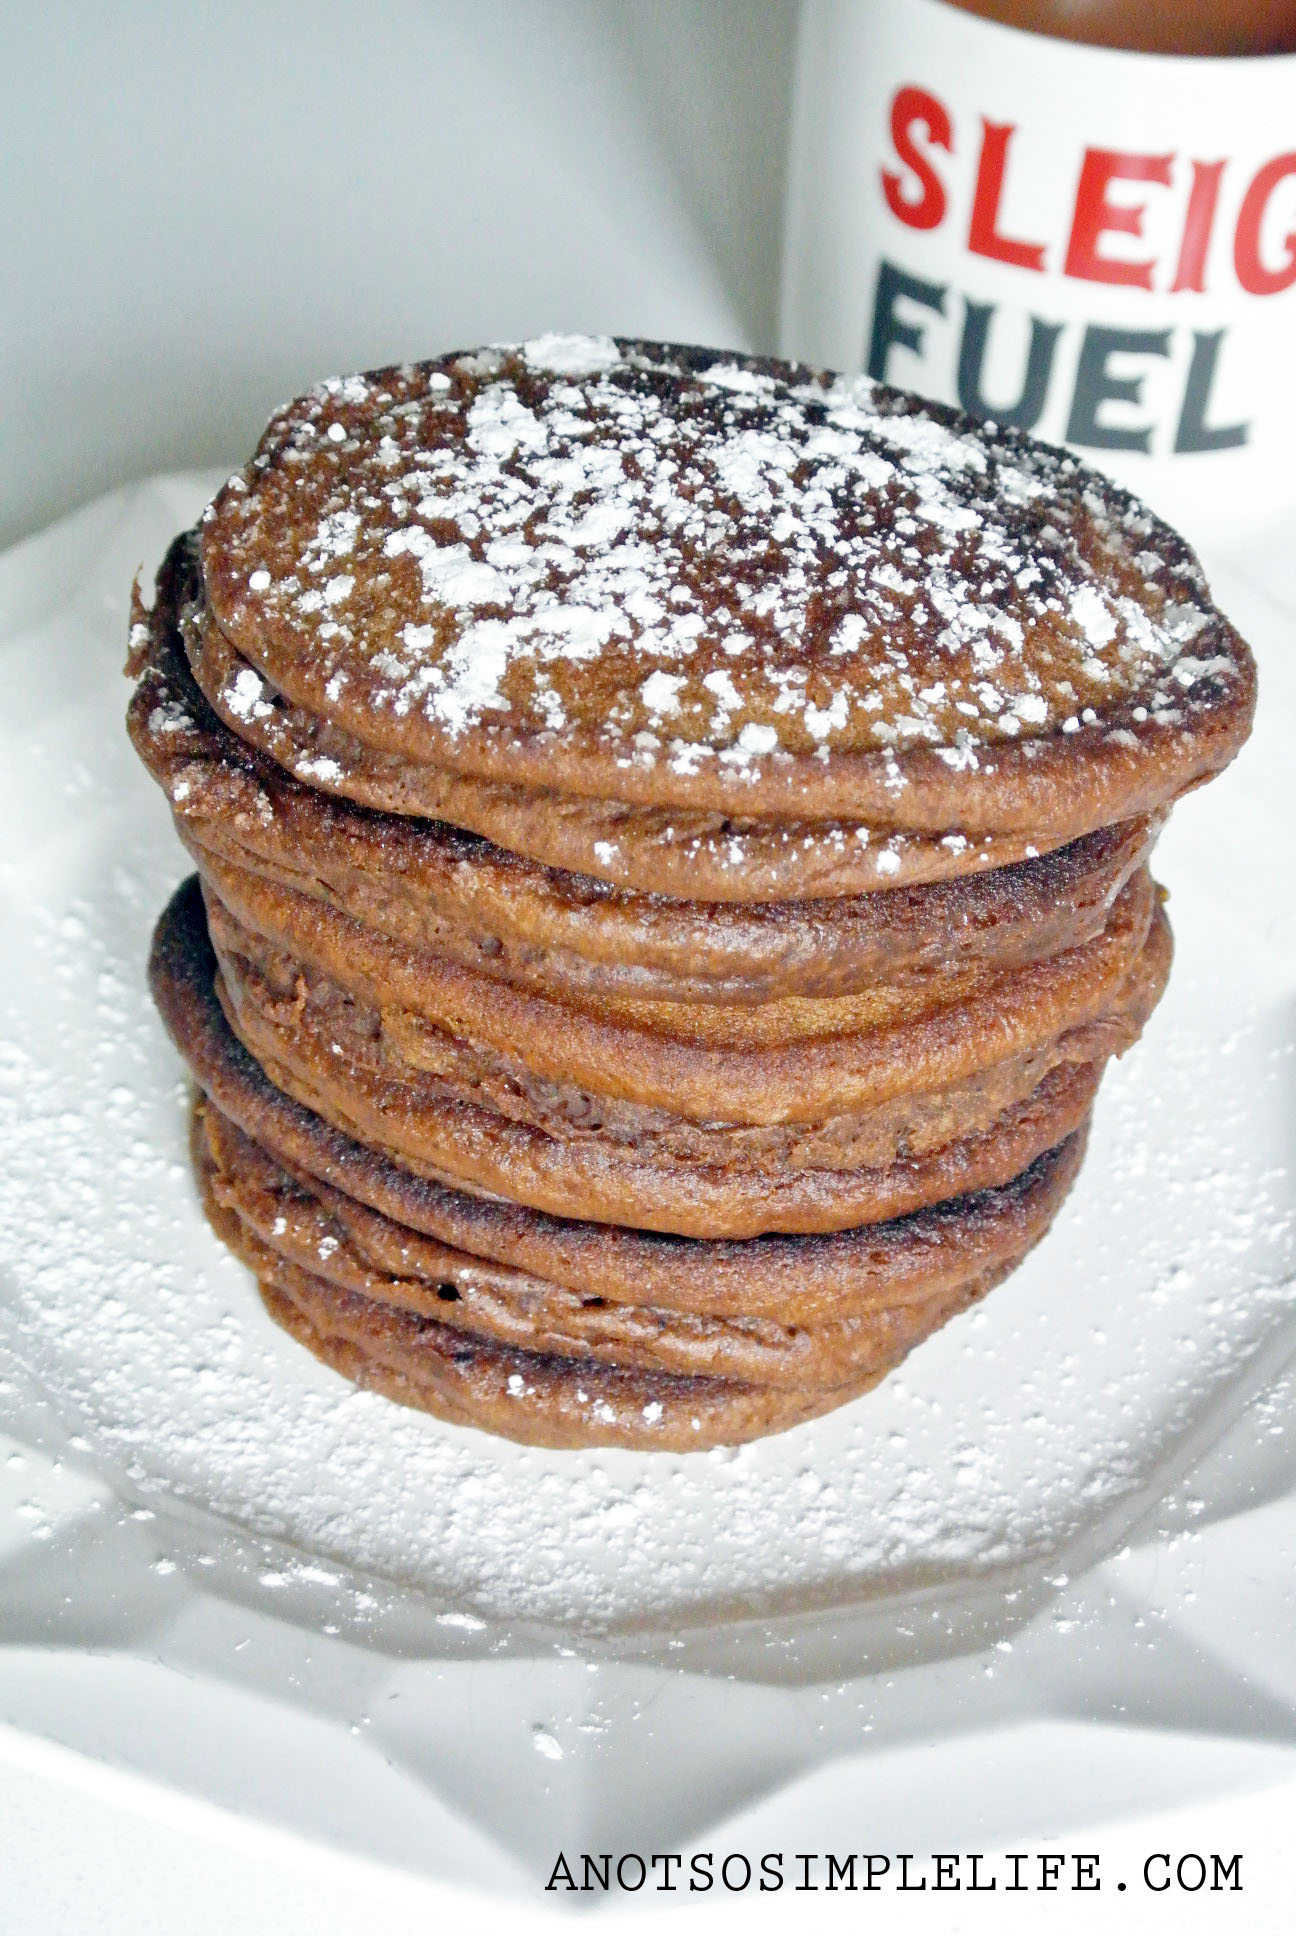 Gluten Free, Dairy Free, Soy Free, Nut Free Gingerbread Pancakes